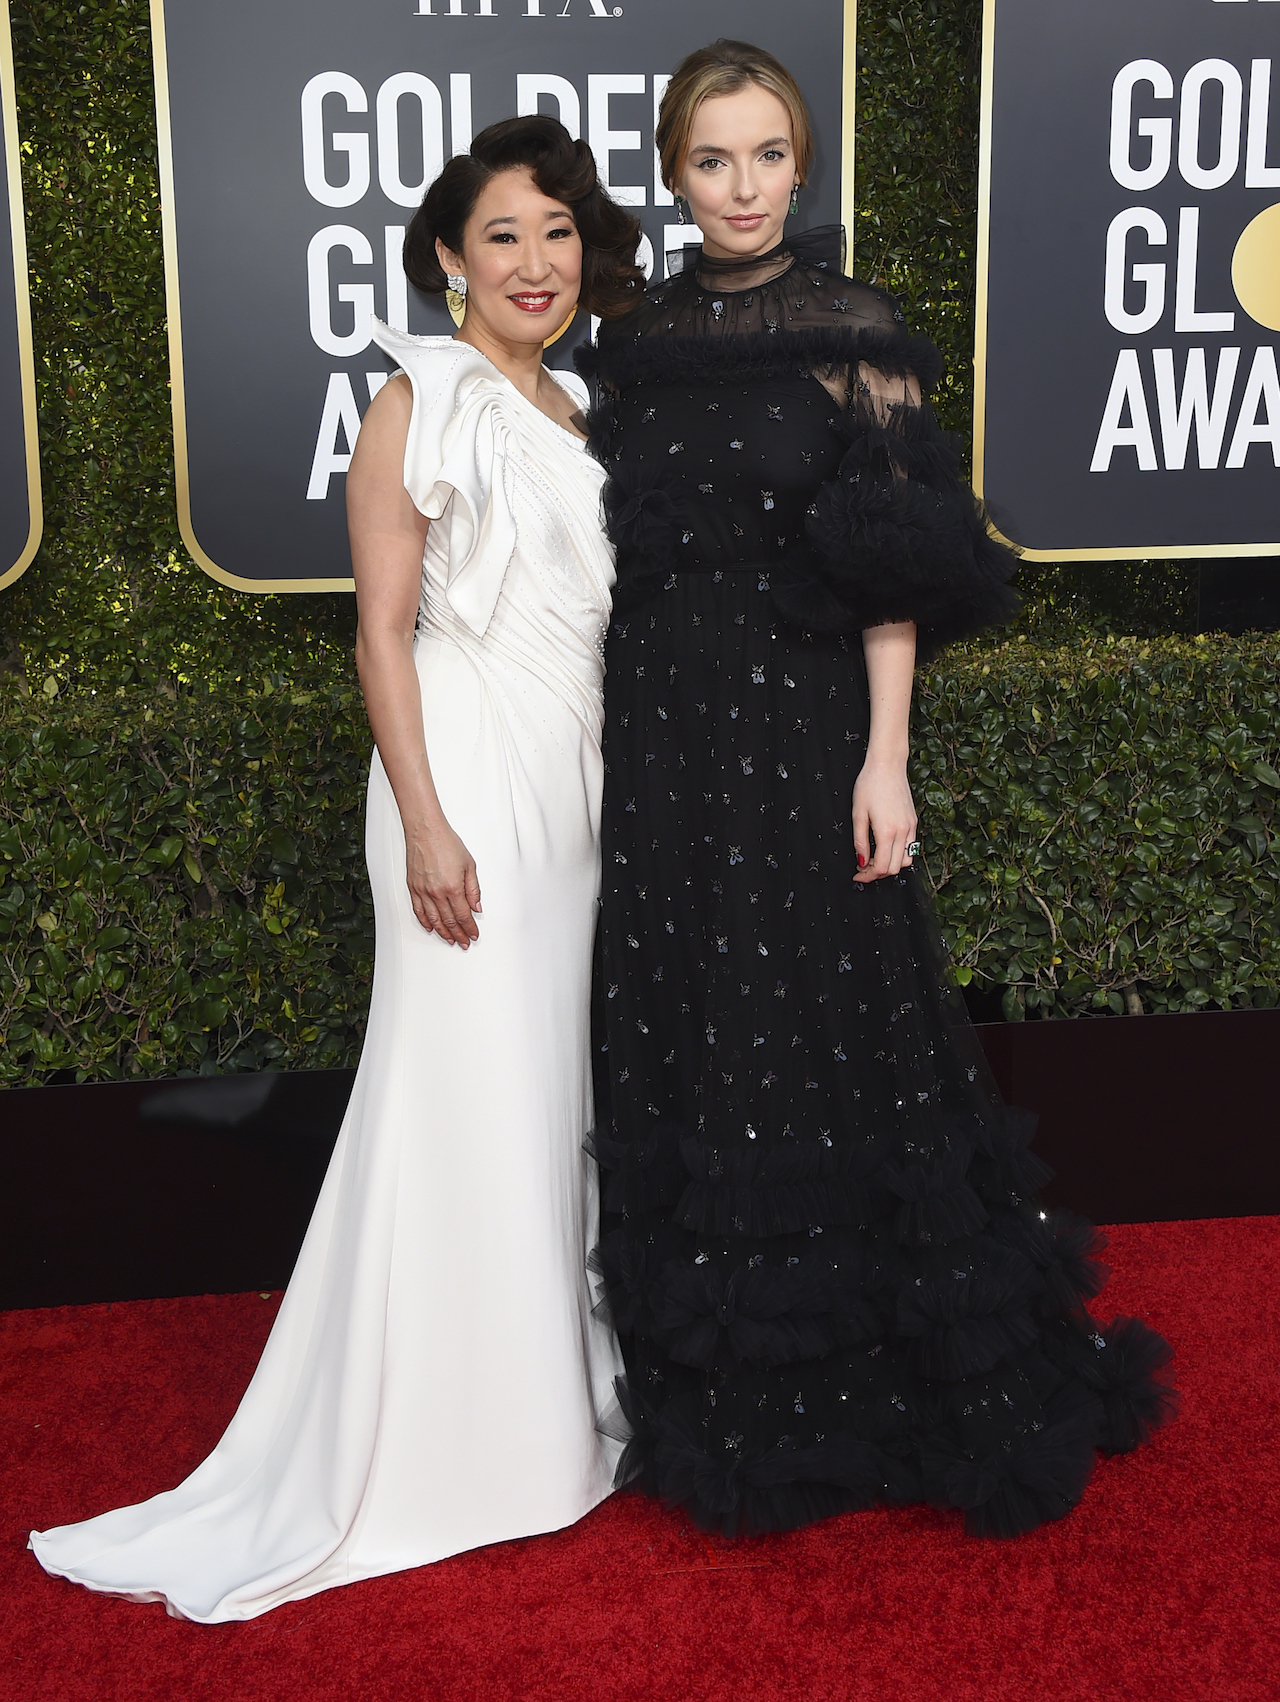 <div class='meta'><div class='origin-logo' data-origin='AP'></div><span class='caption-text' data-credit='Invision'>Sandra Oh, left, and Jodie Comer arrive at the 76th annual Golden Globe Awards at the Beverly Hilton Hotel on Sunday, Jan. 6, 2019, in Beverly Hills, Calif.</span></div>